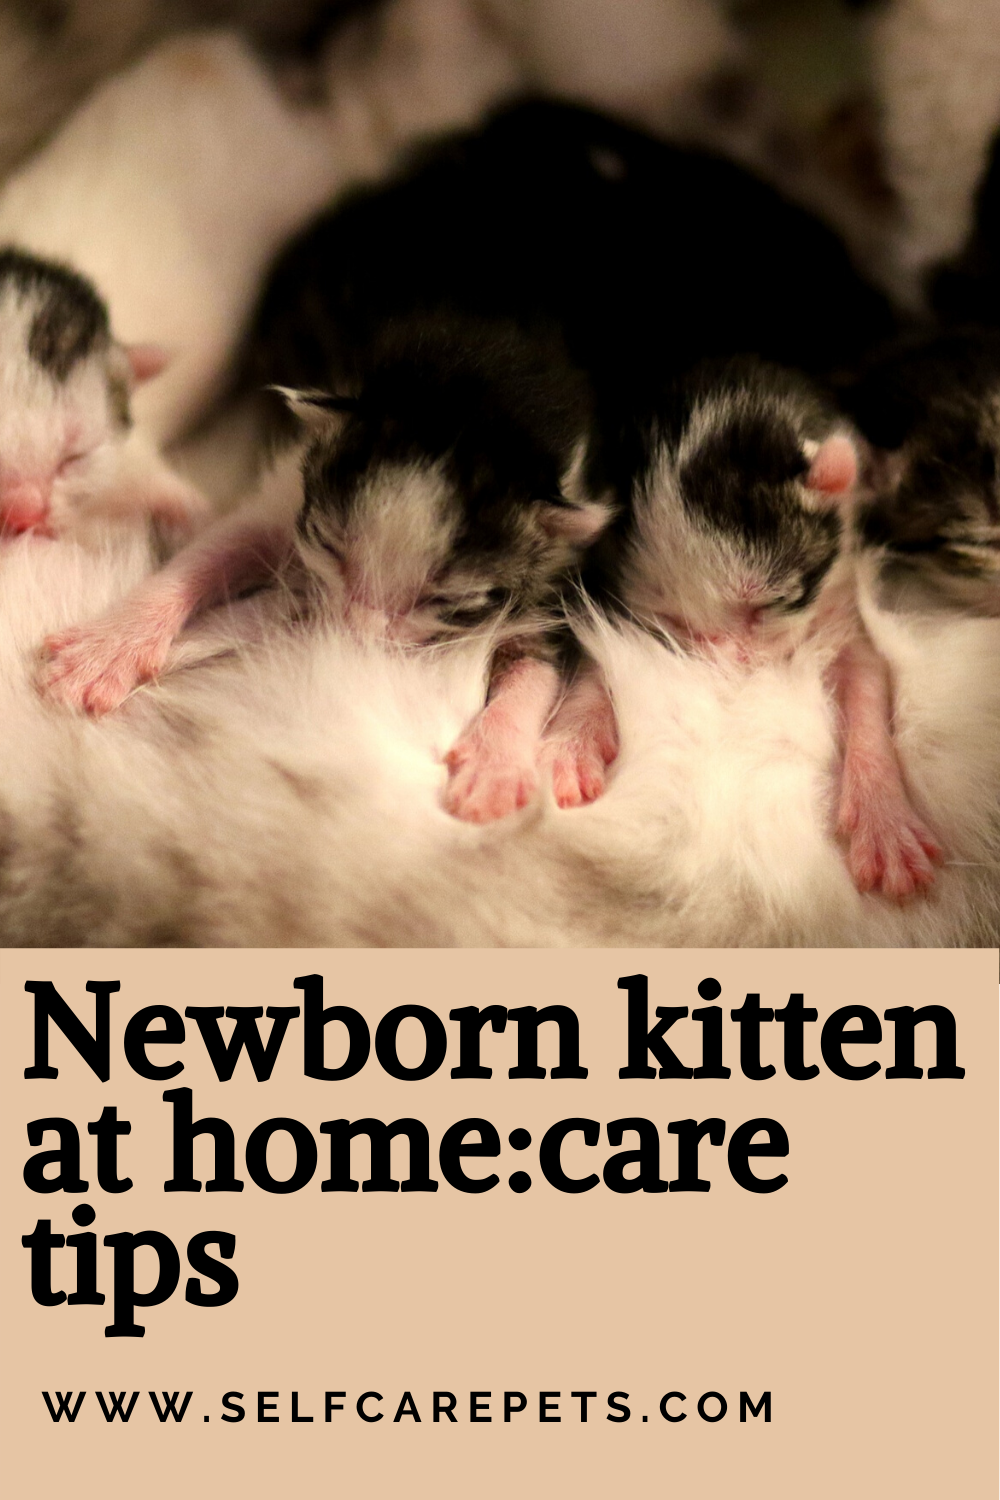 Newborn Kitten At Home Care Tips In 2020 Newborn Kittens Pet Care Cats Kitten Care